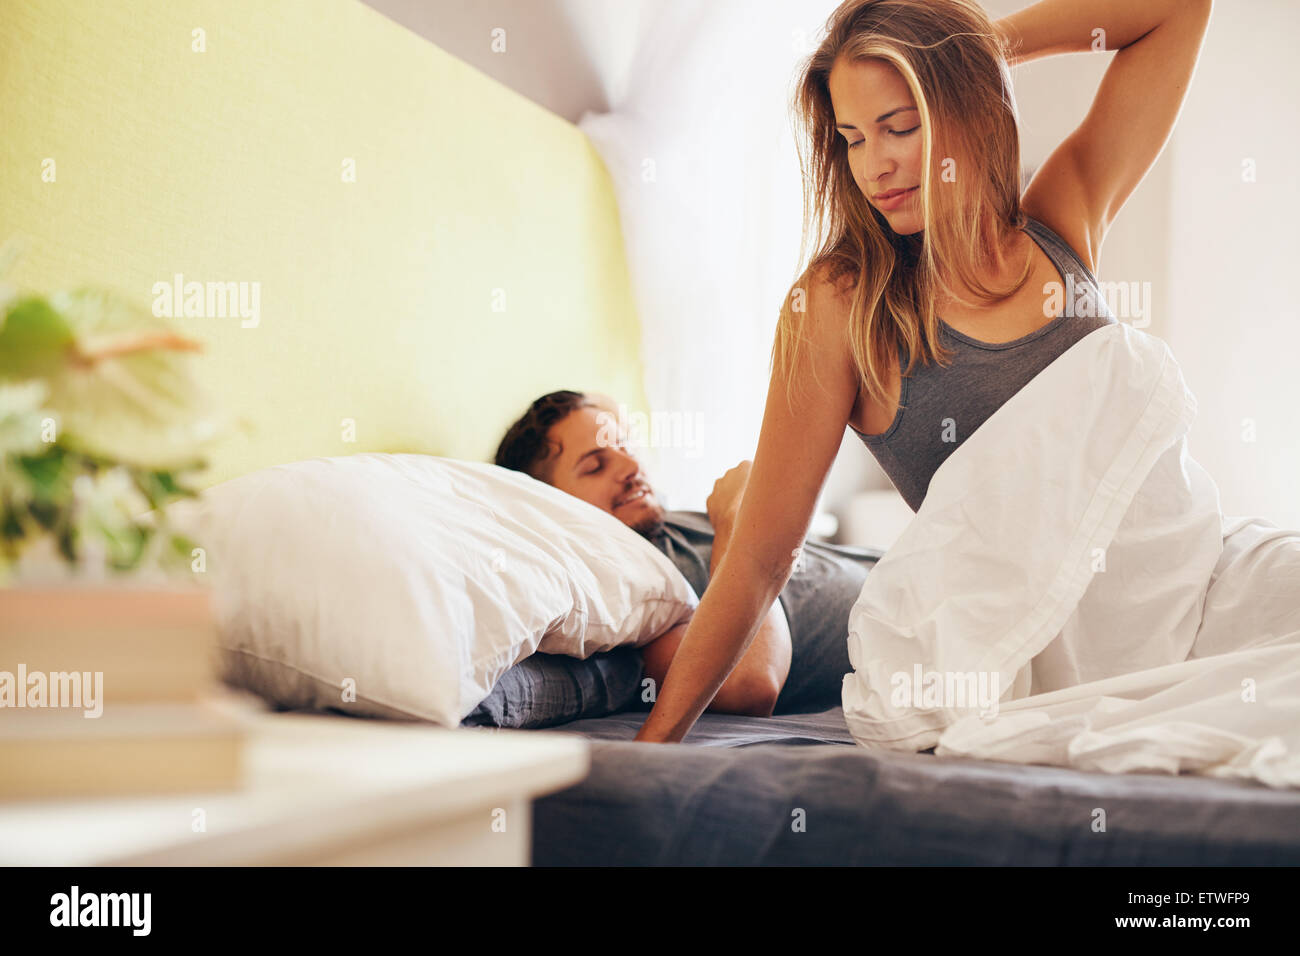 Portrait of beautiful young woman waking up in morning with her husband sleeping peacefully behind her - Stock Image